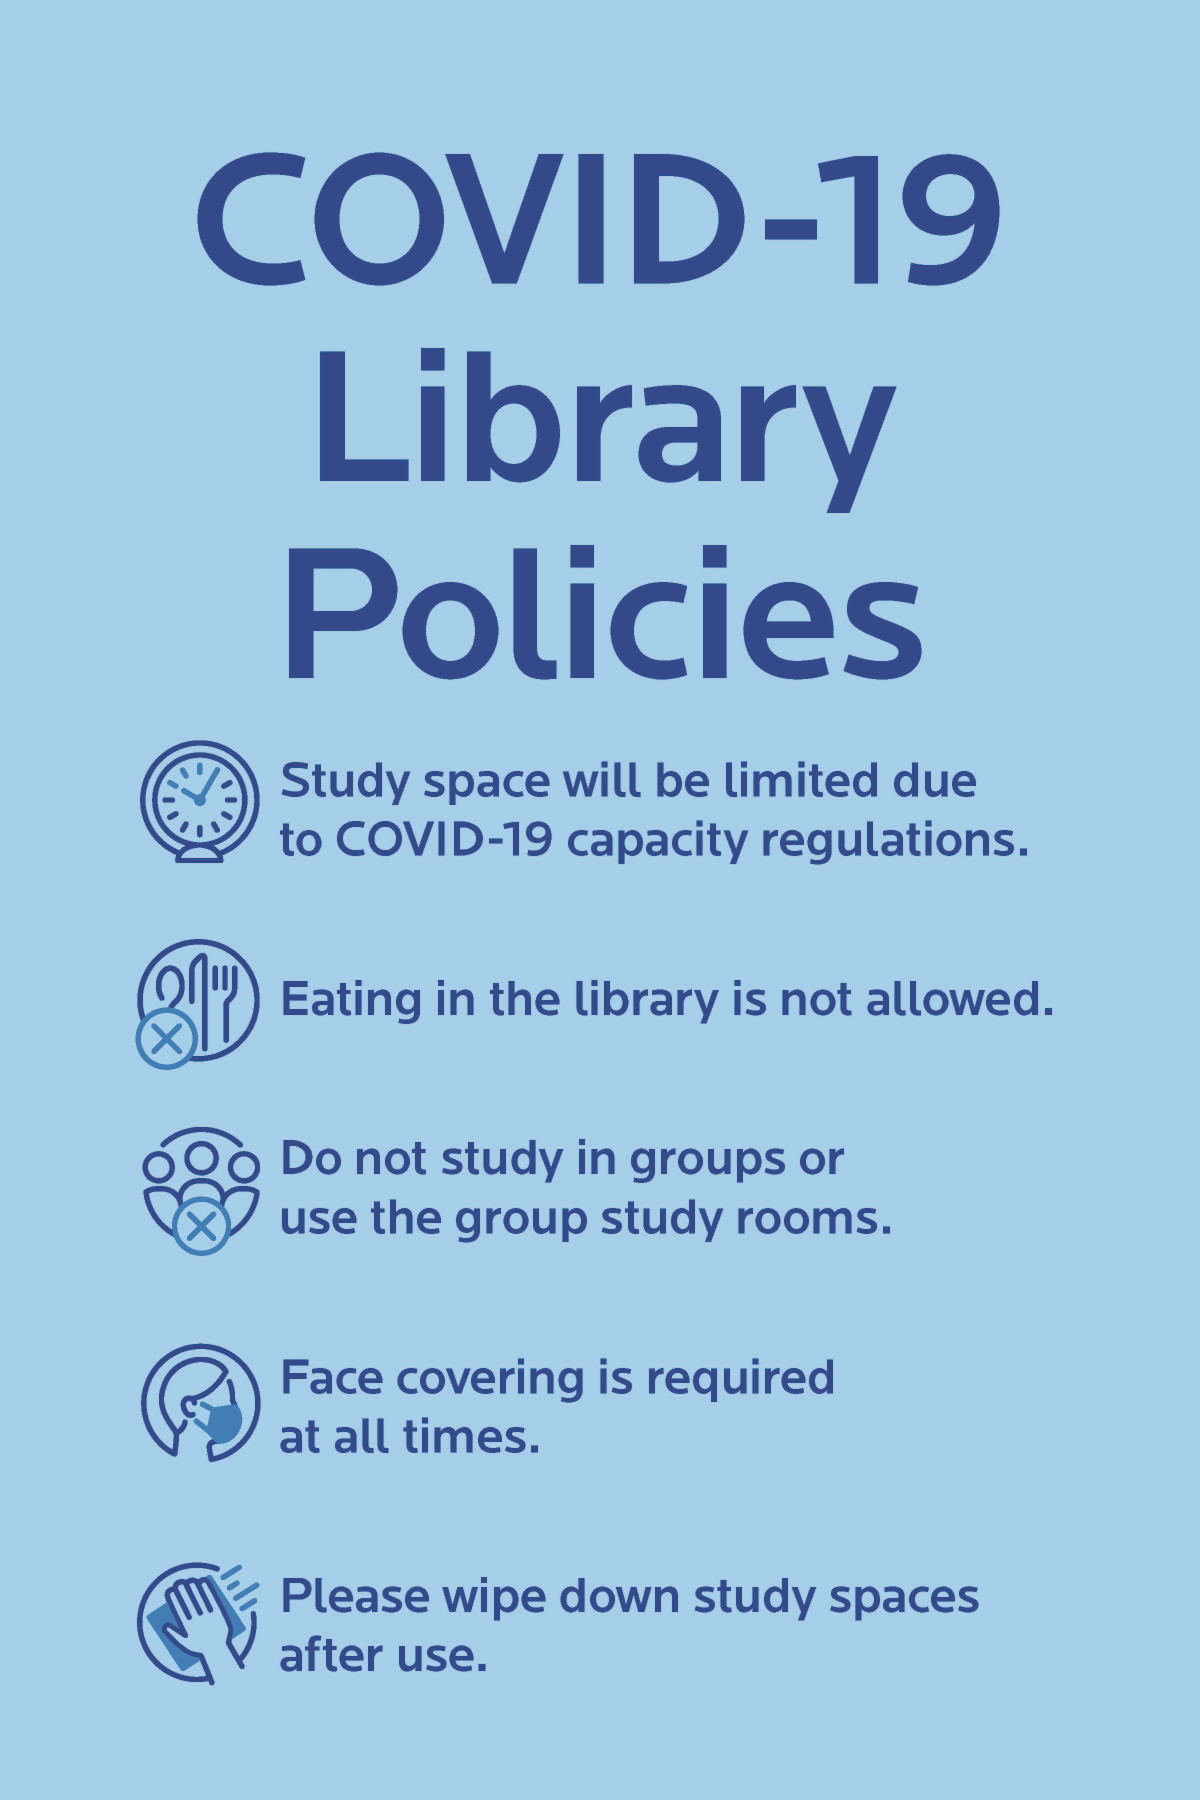 COVID-19 Library Policies poster